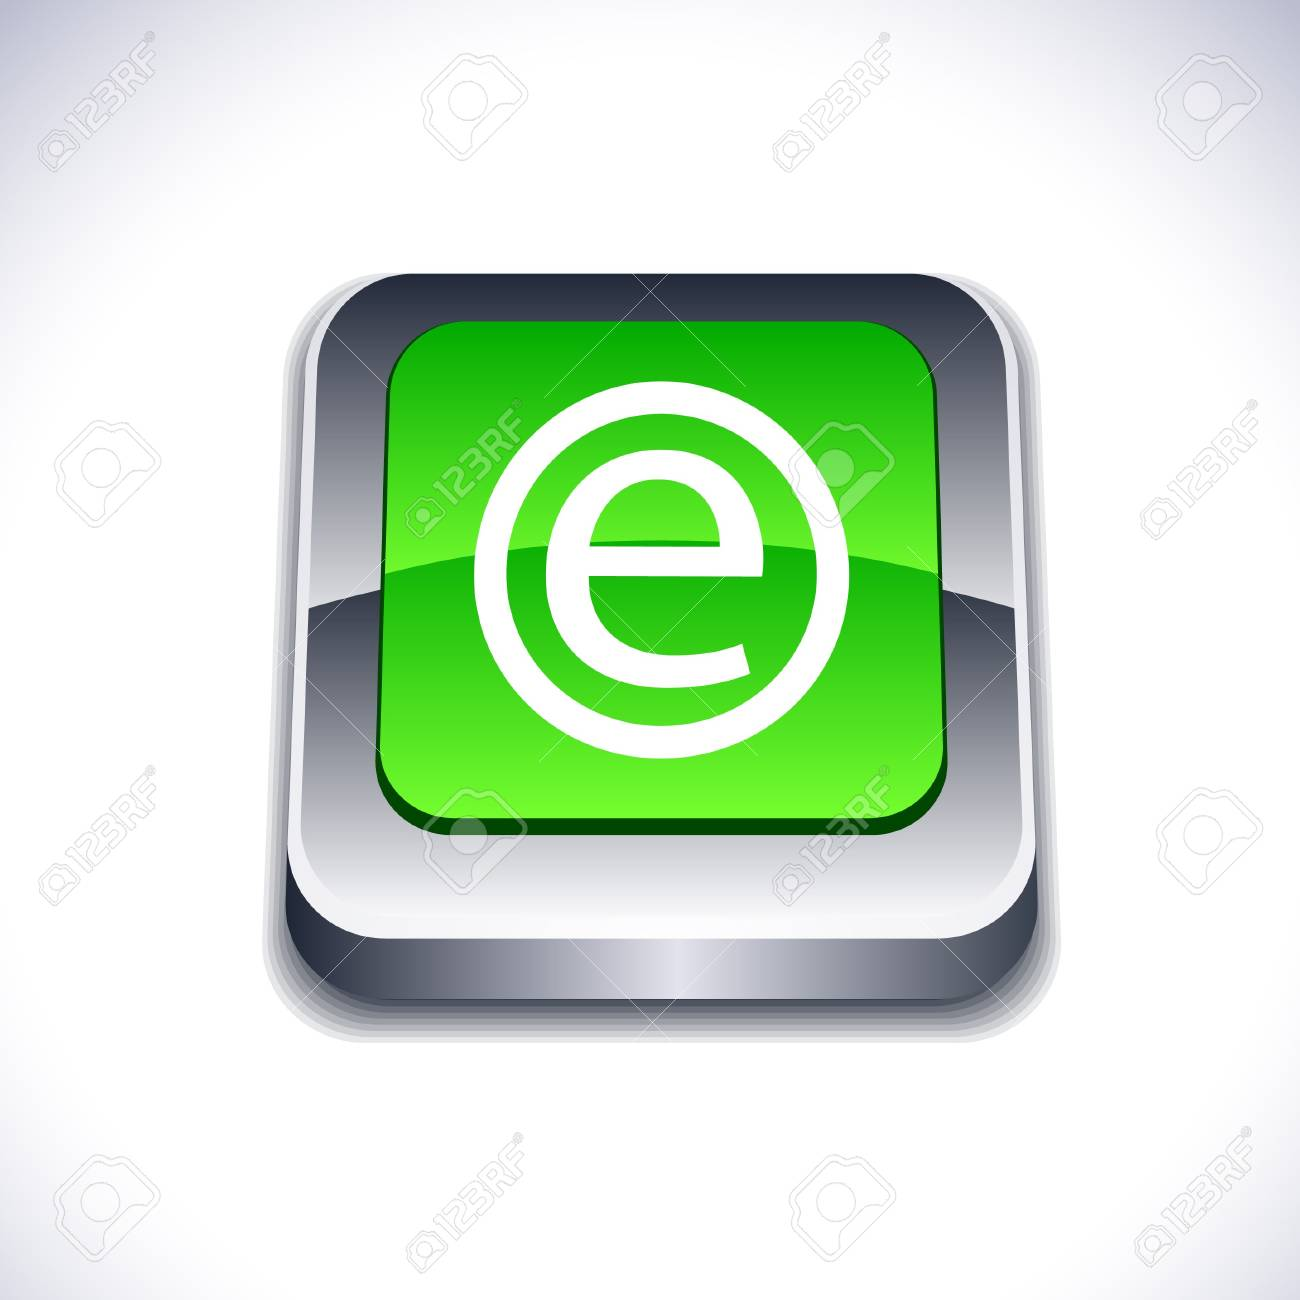 Enternet metallic 3d vibrant square icon. Stock Vector - 7286984